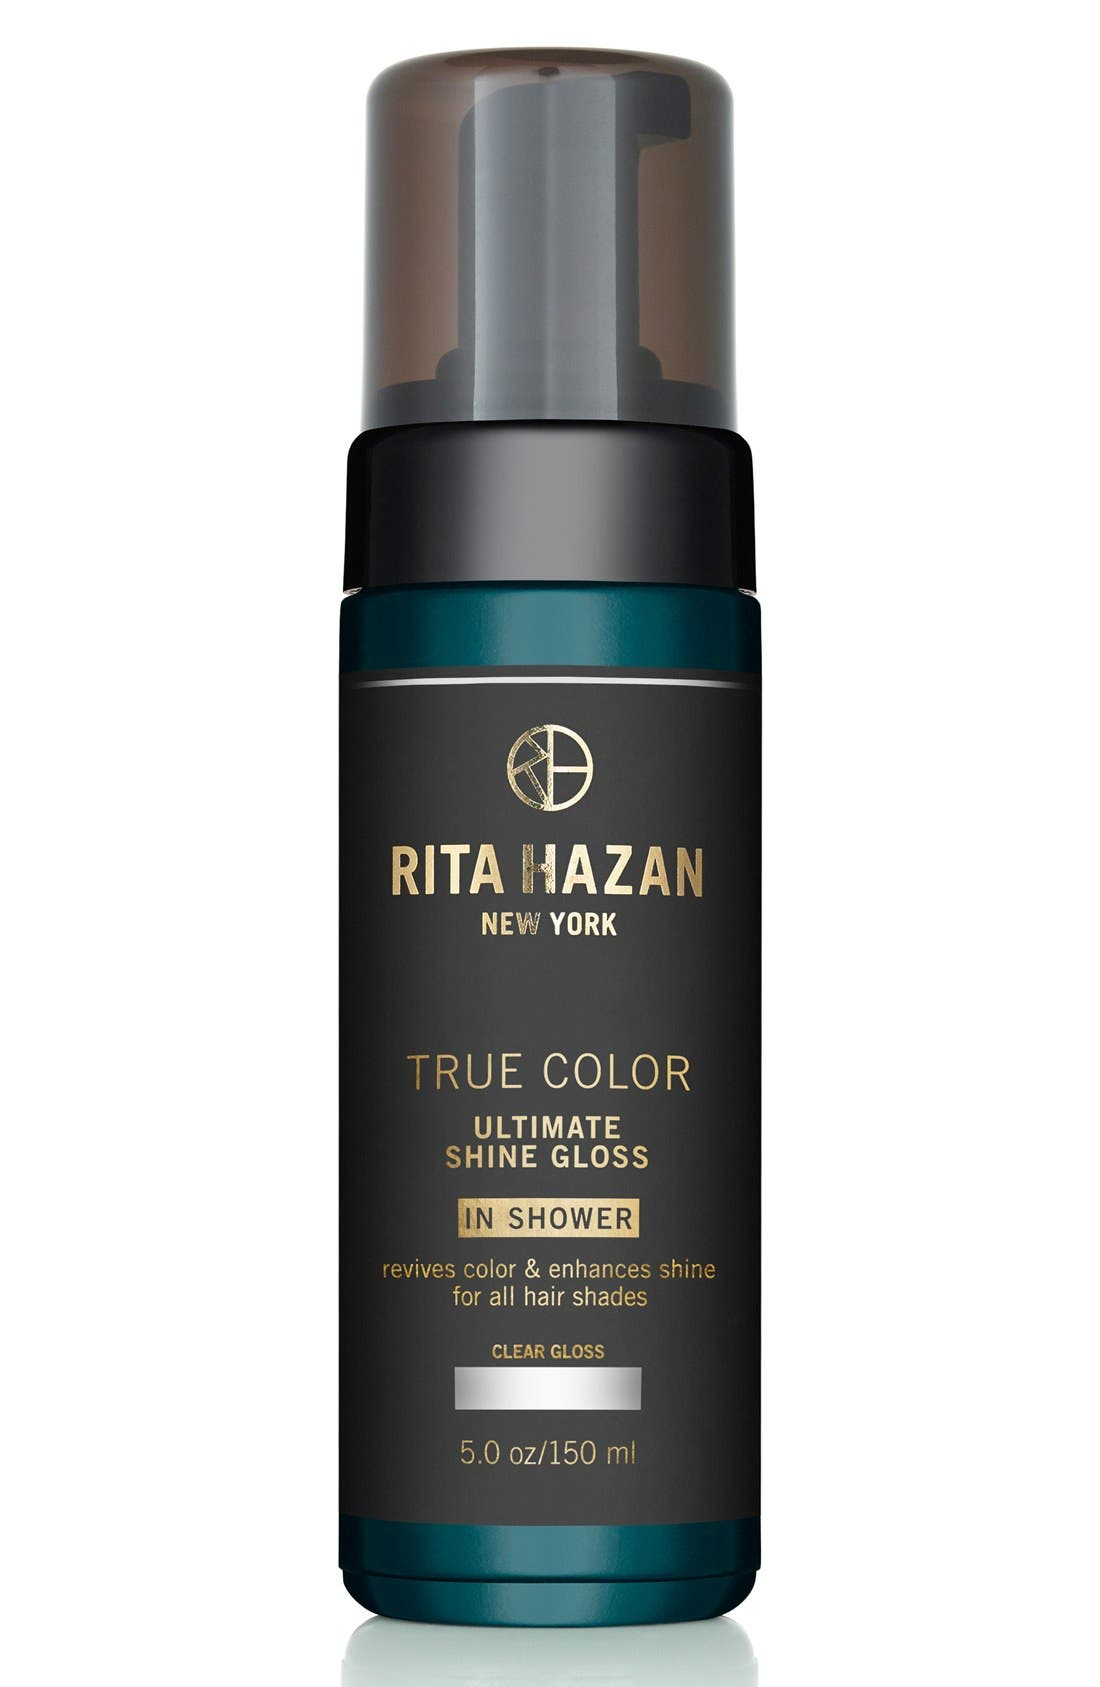 'True Color' Ultimate Shine Gloss,                             Main thumbnail 1, color,                             CLEAR